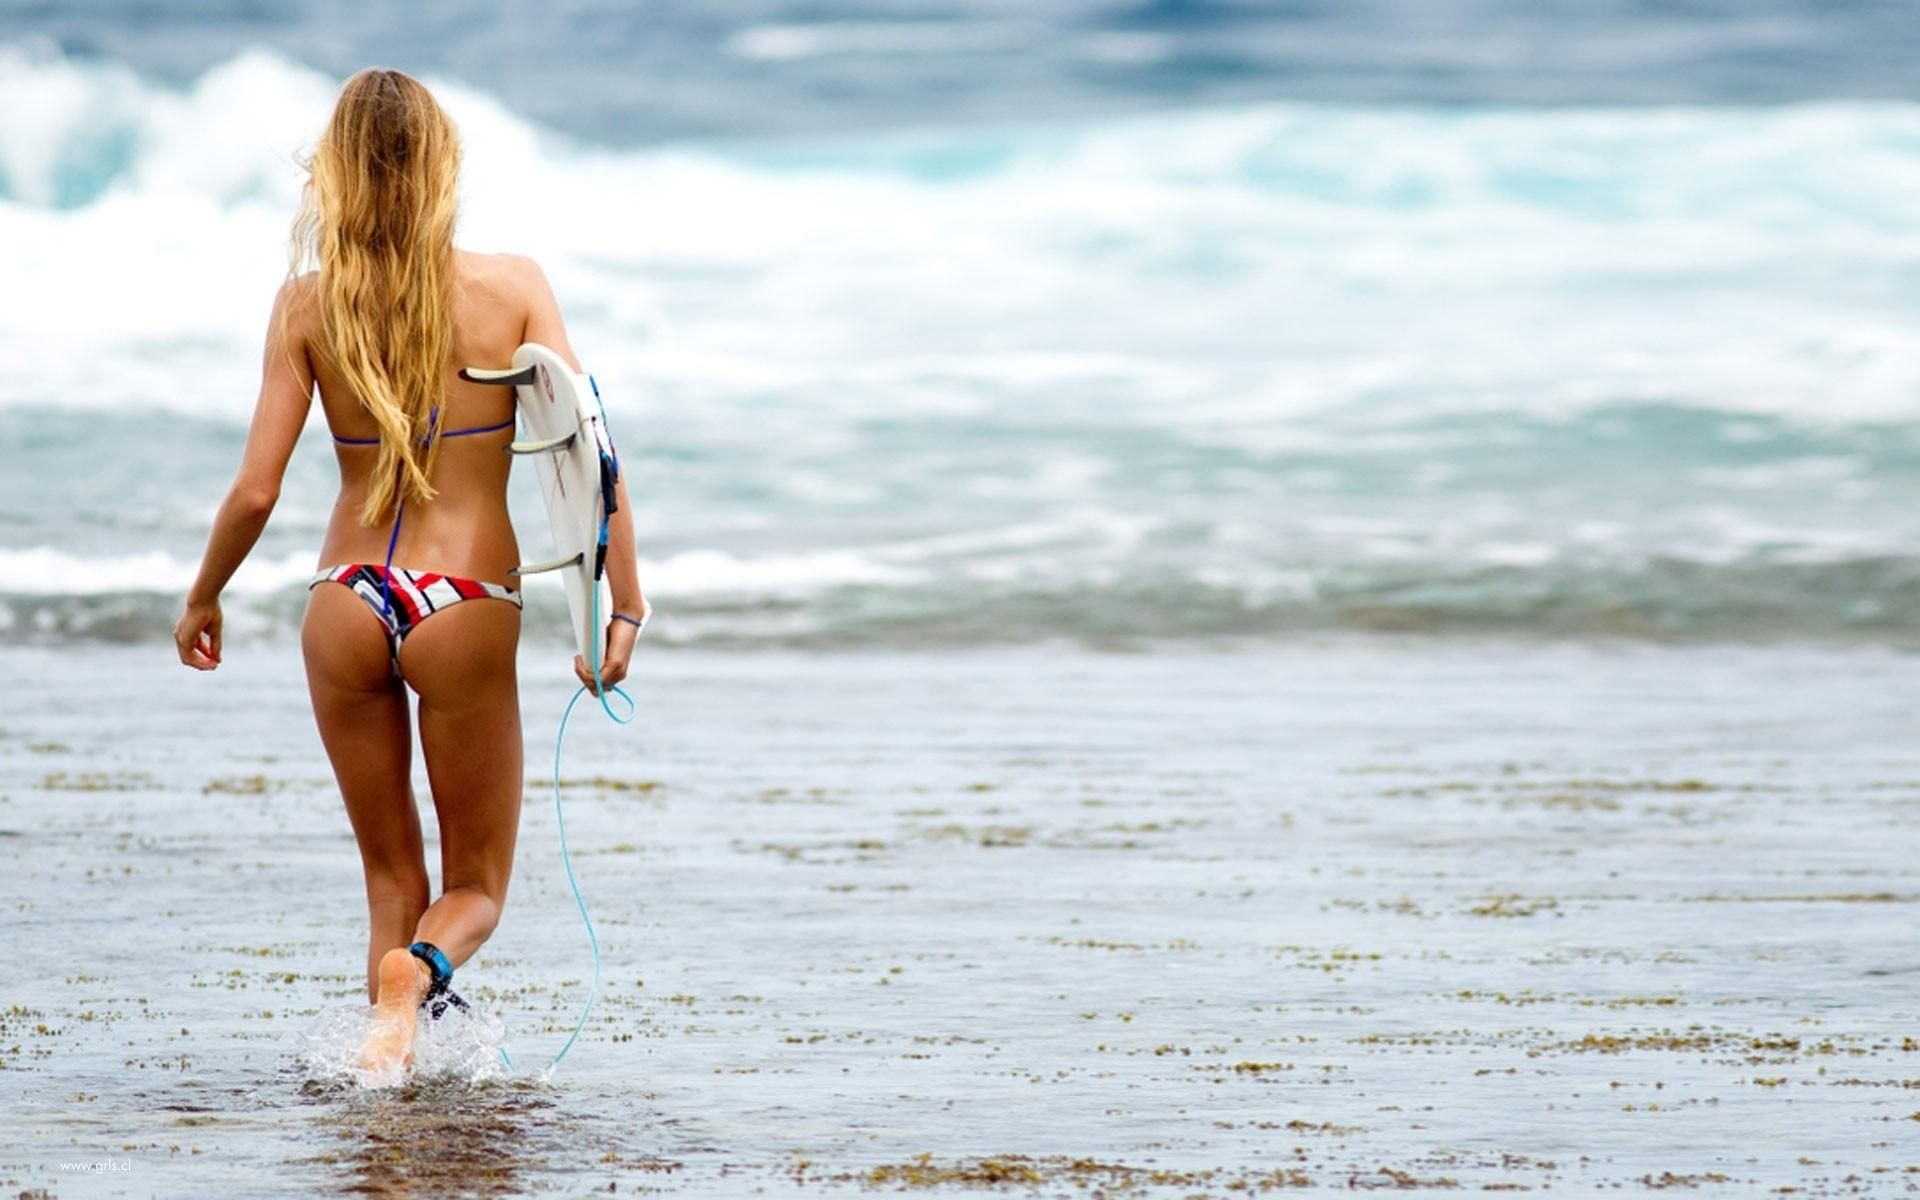 Res: 1920x1200, Alana Blanchard  Wallpaper HD Pictures